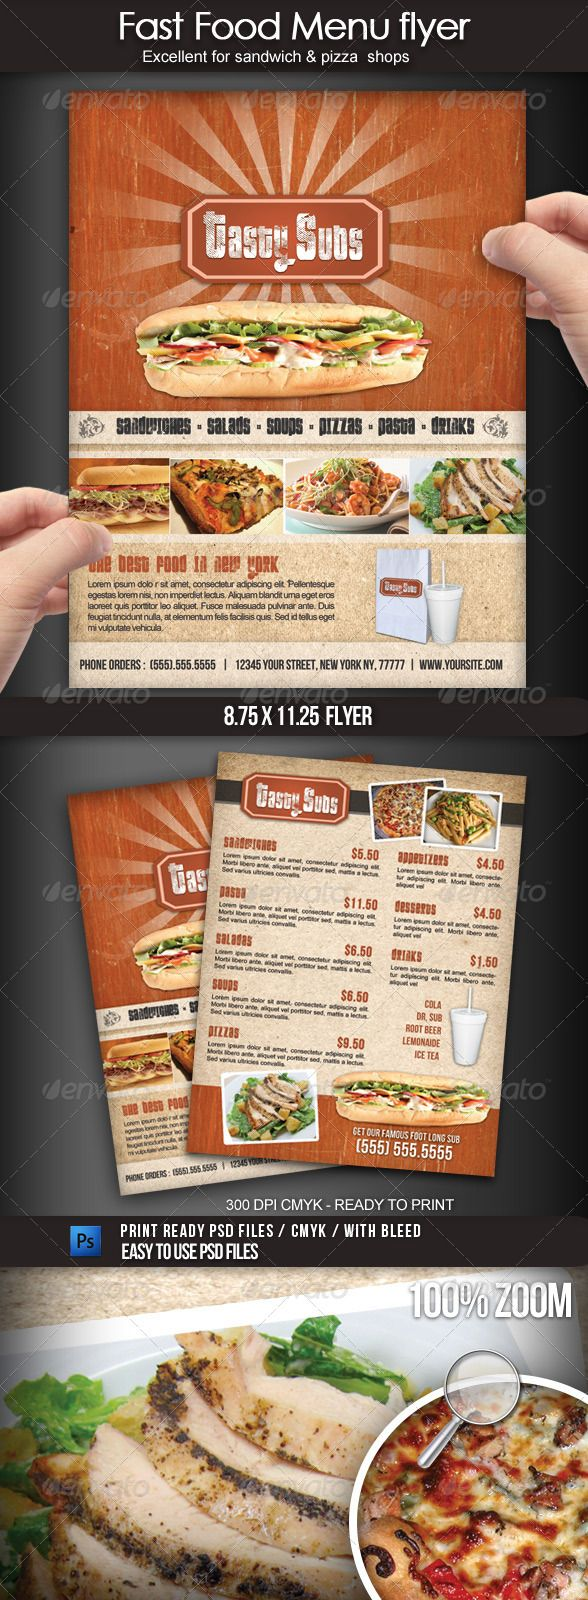 23 Best Images About Food Flyers On Pinterest Food Bank